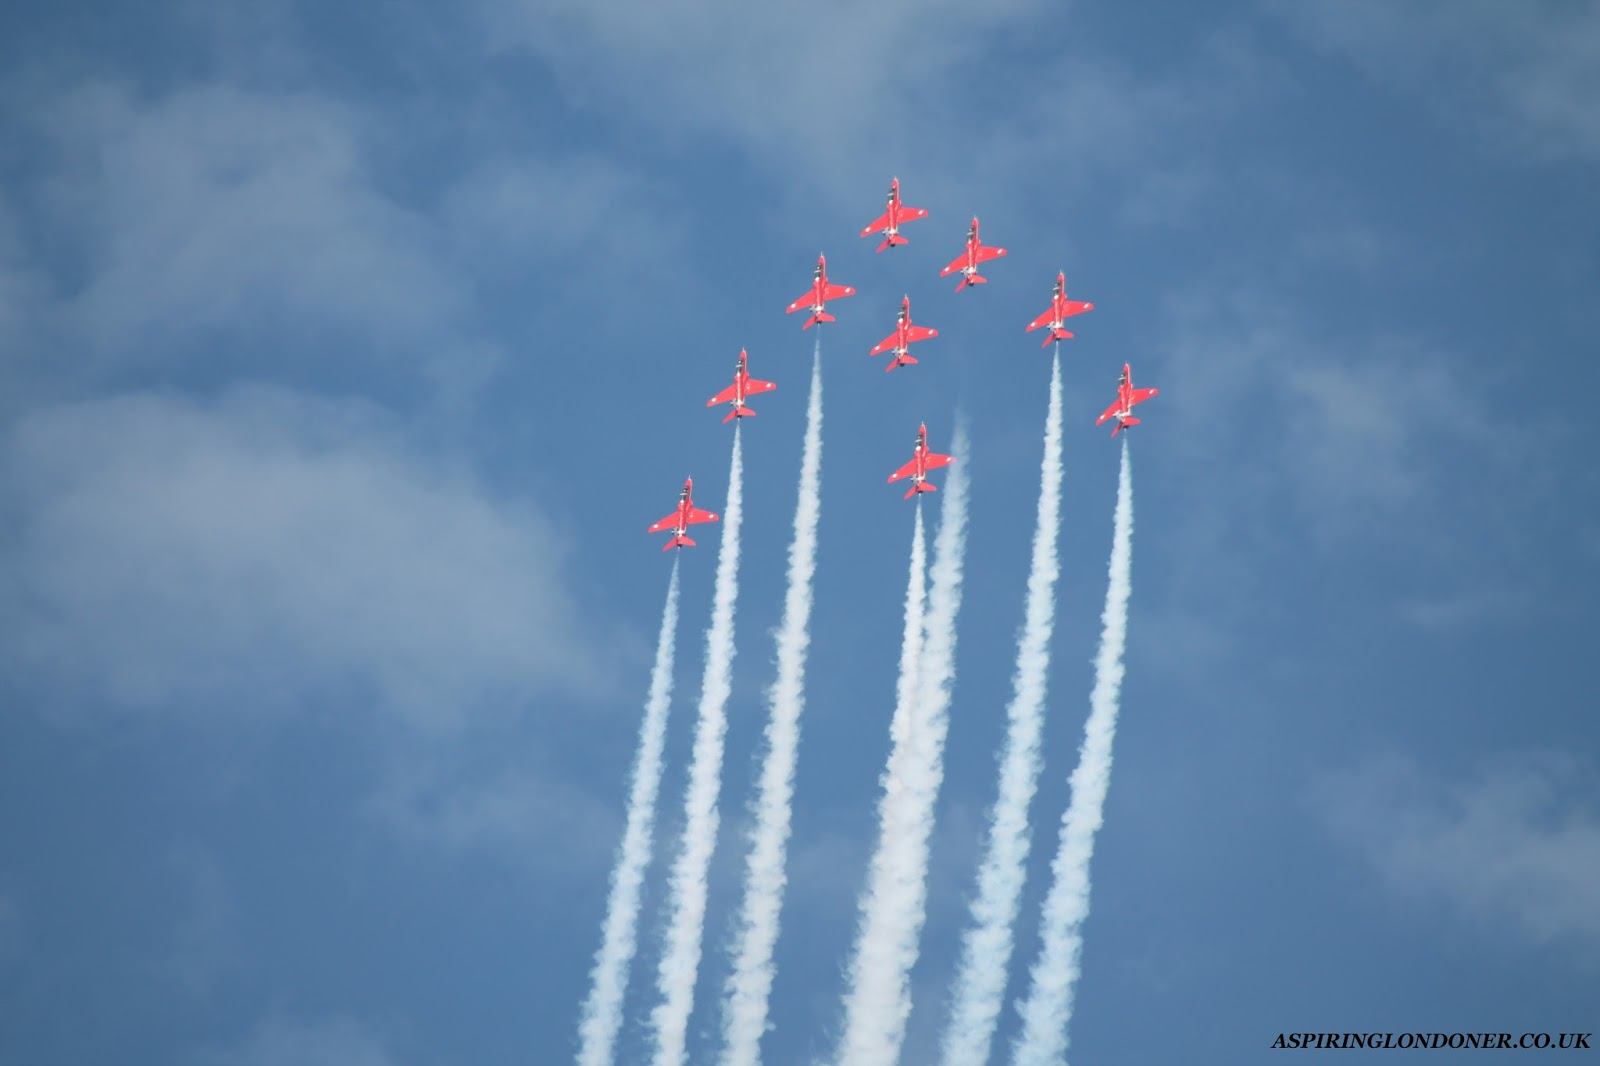 Sunderland International Airshow Red Arrows - Aspiring Londoner